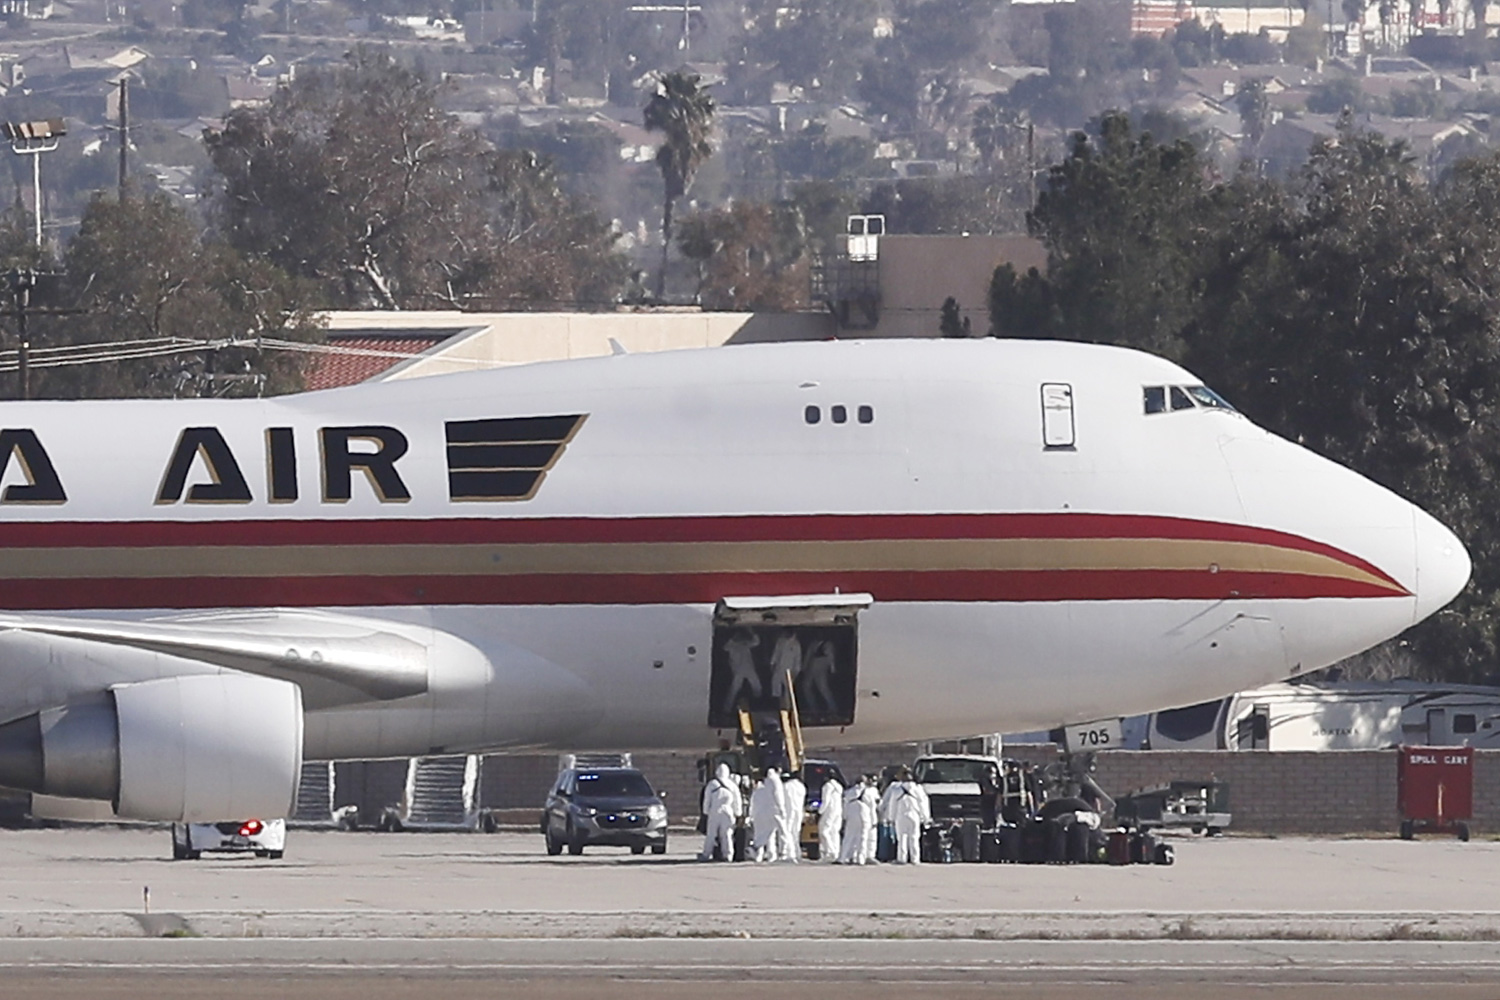 People in hazmat suits are seen outside of the Kalitta Air Boeing 747-400 freighter as buses approach the aircraft at the March Air Reserve Base carrying about 200 American evacuees in Riverside, California, USA, 29 January 2020